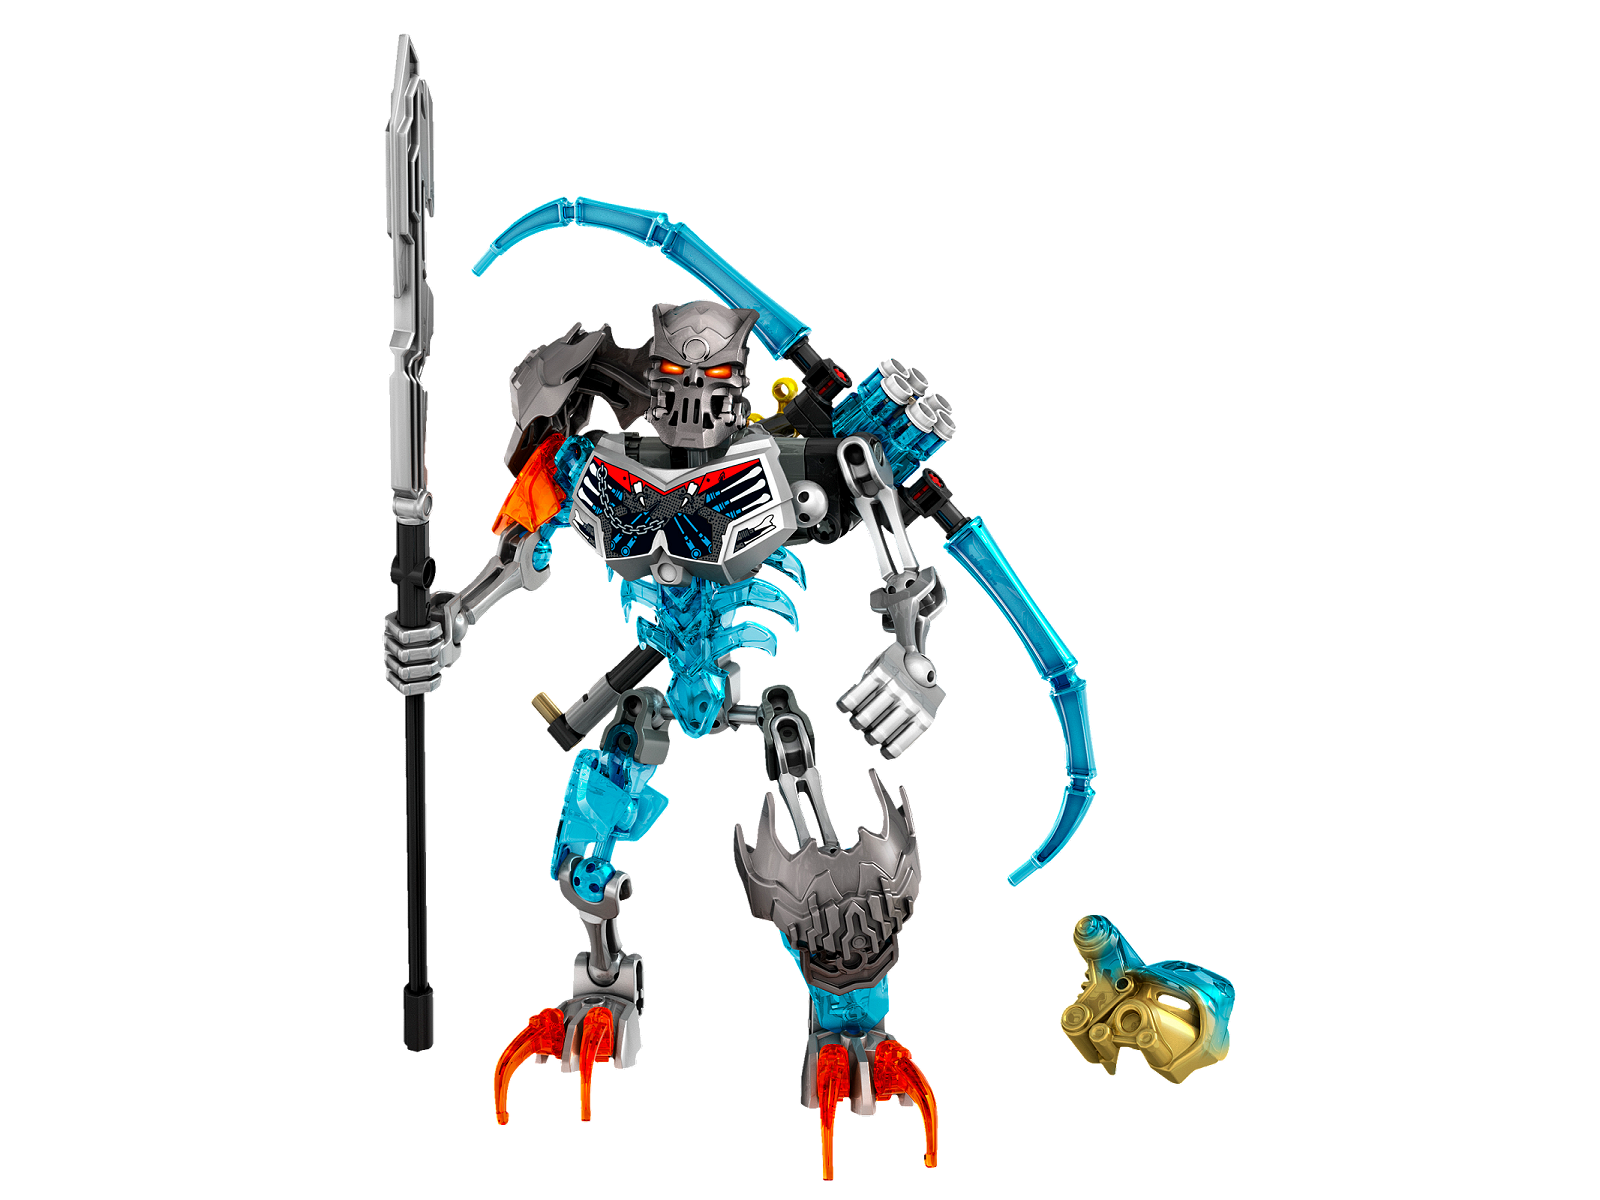 Lego 70791 Bionicle Skull Warrior complet + Notice + boite neuf de 2015 -CNB32